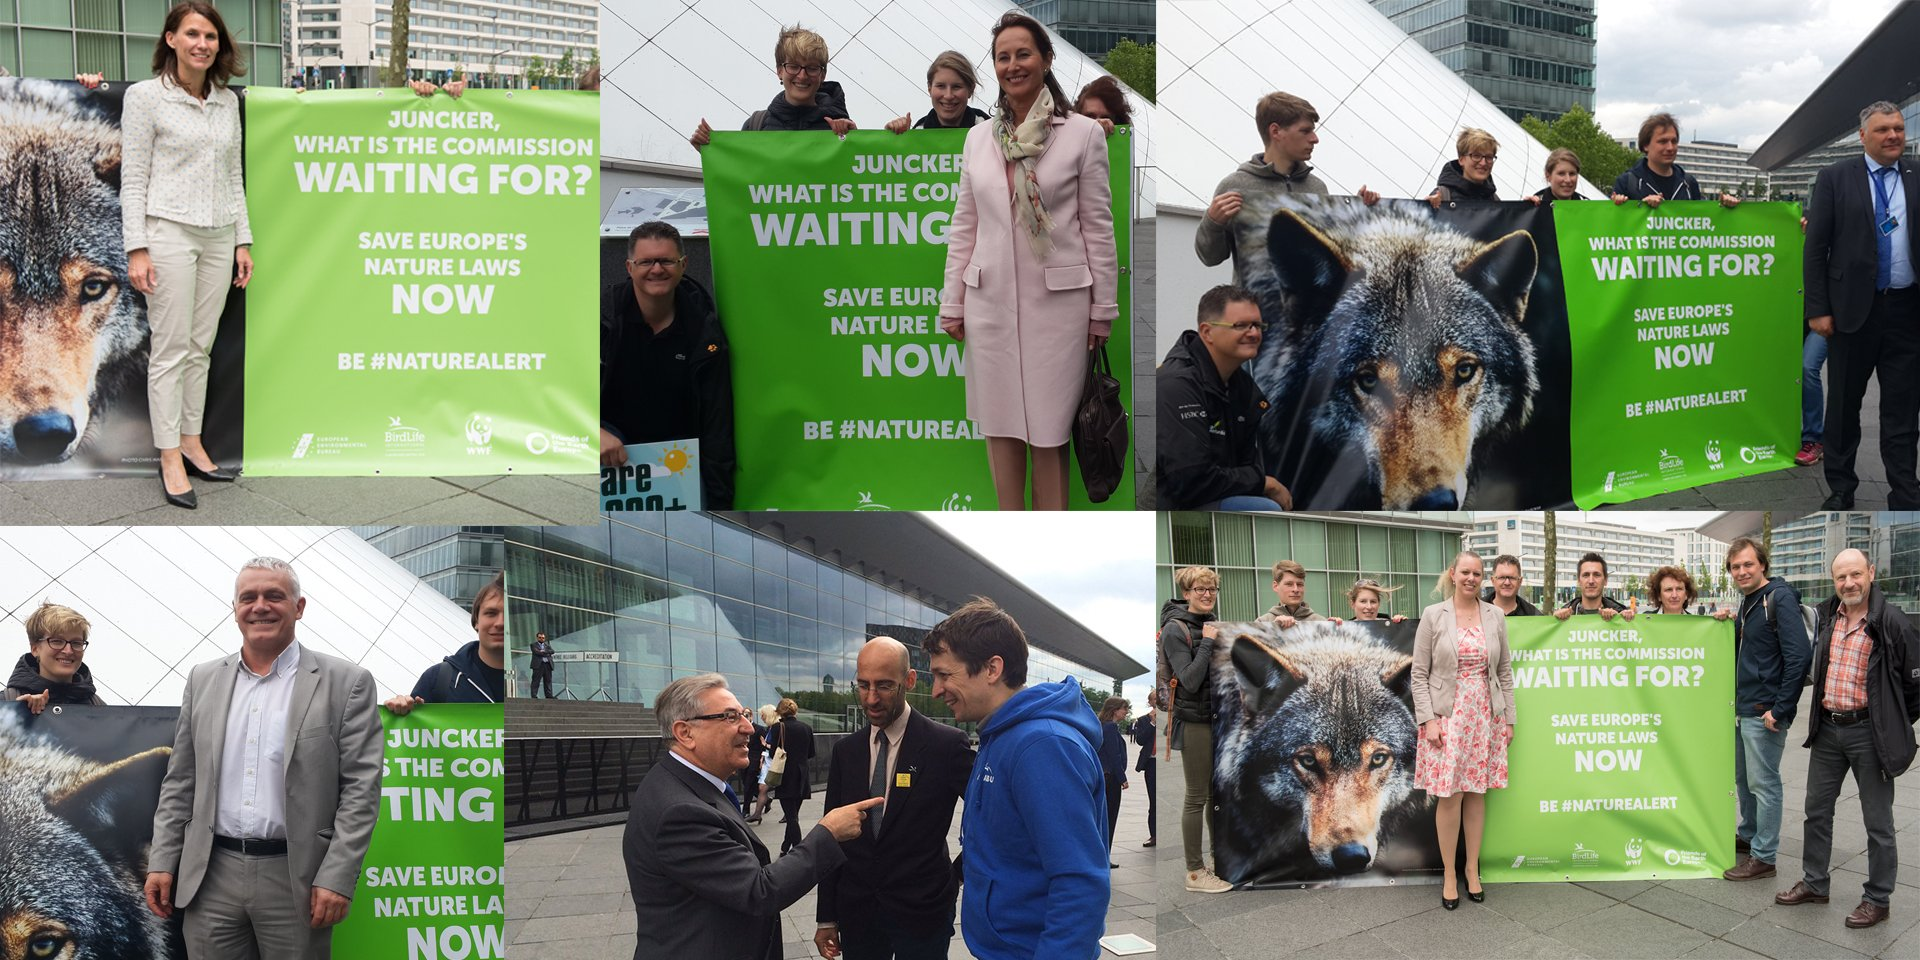 #Environment Ministers ask @JunckerEU to save Europe's #Nature laws https://t.co/5F9aFSDhZL #NatureAlert https://t.co/xysGmjf4Q8